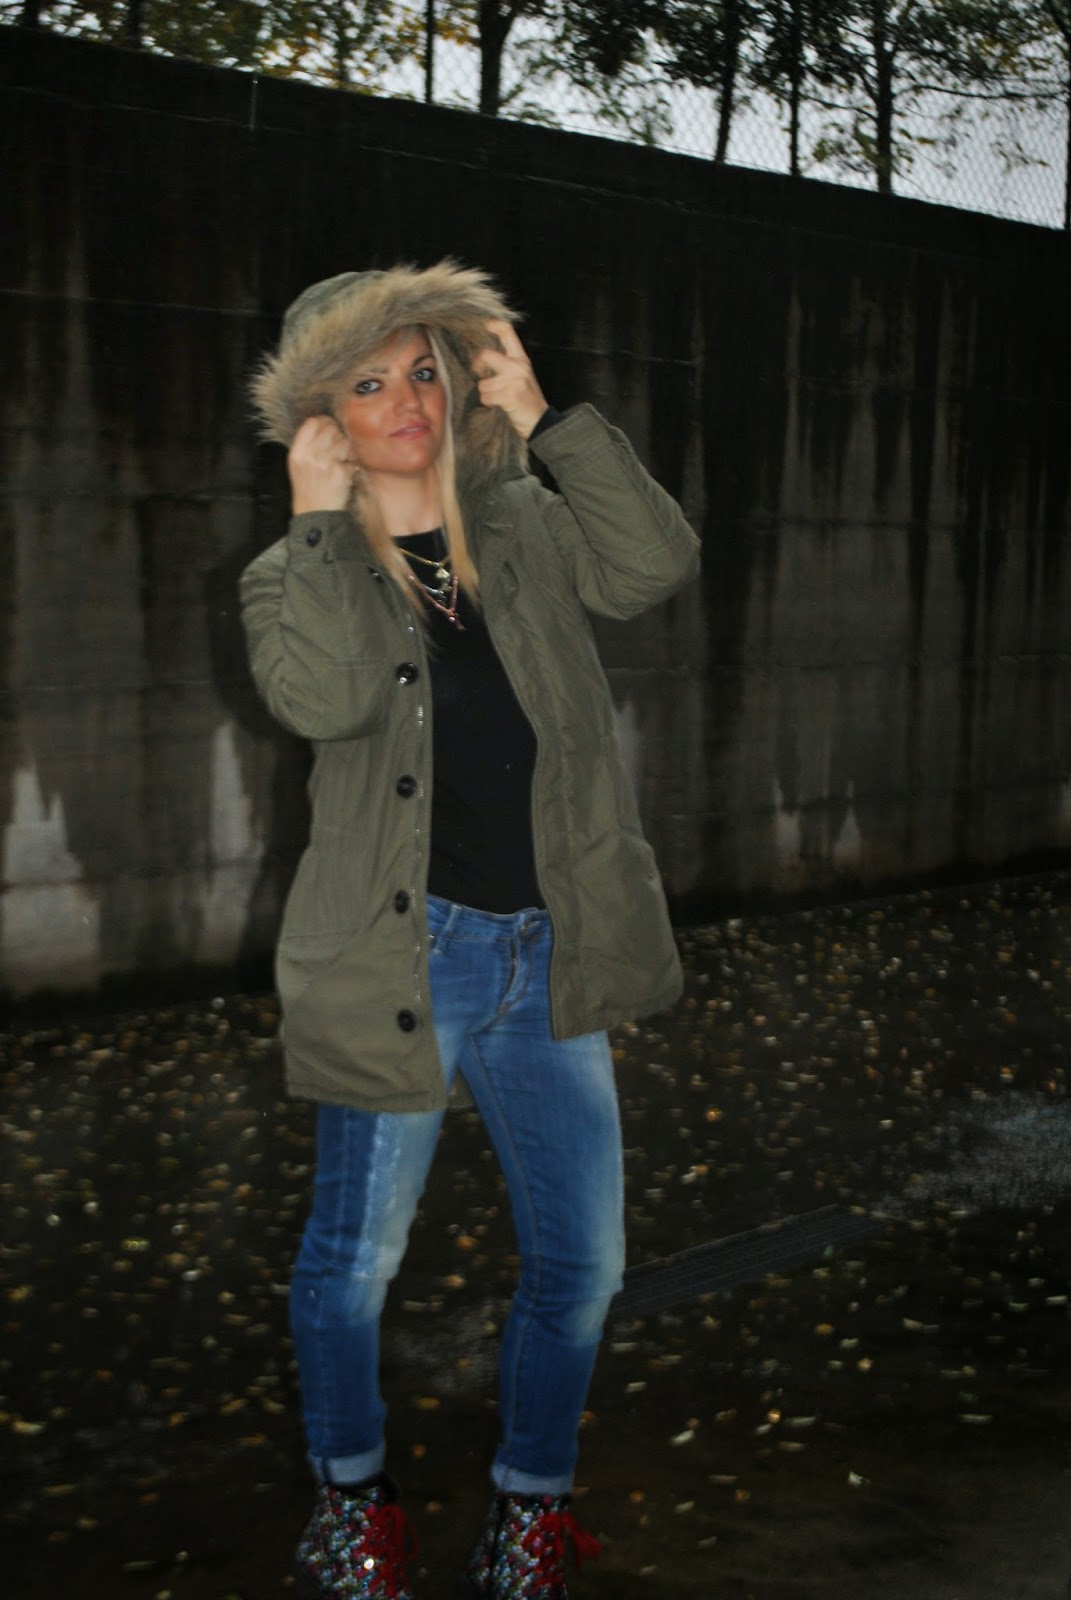 outfit parka verde militare outfit da pioggia rainy outfit outfit dr martens outfit parka benetton collana a forma di chiave majique london majique london jewels outfit da pioggia outfit novembre 2014 november outfits how to wear parka coat green military parka coat dr martnes outfit come abbinare il parka come abbinare le dr martens how to wear parka how to wear dr martens  autumnal outfits  outfit autunnali outfit mariafelicia magno mariafelicia magno fashion blogger italian girls ragazze italiane fahsion blogger bionde ragazze bionde blonde girls fashion bloggers italy